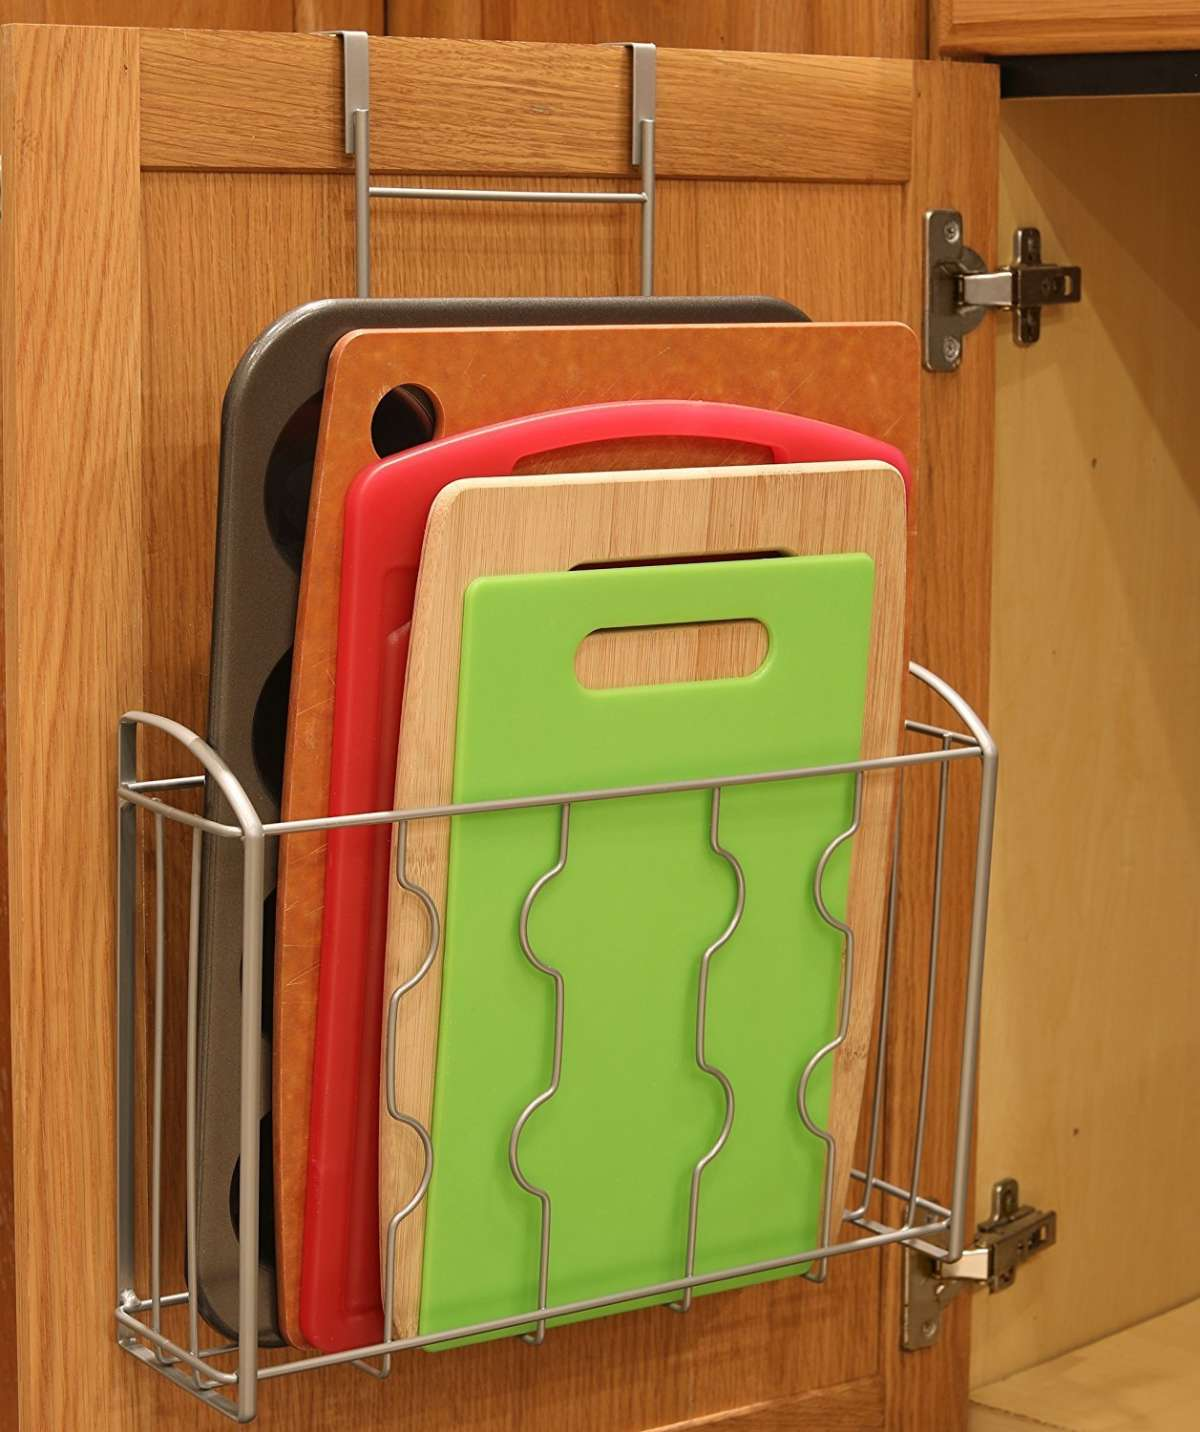 Over The Cabinet Kitchen Storage For Cutting Boards